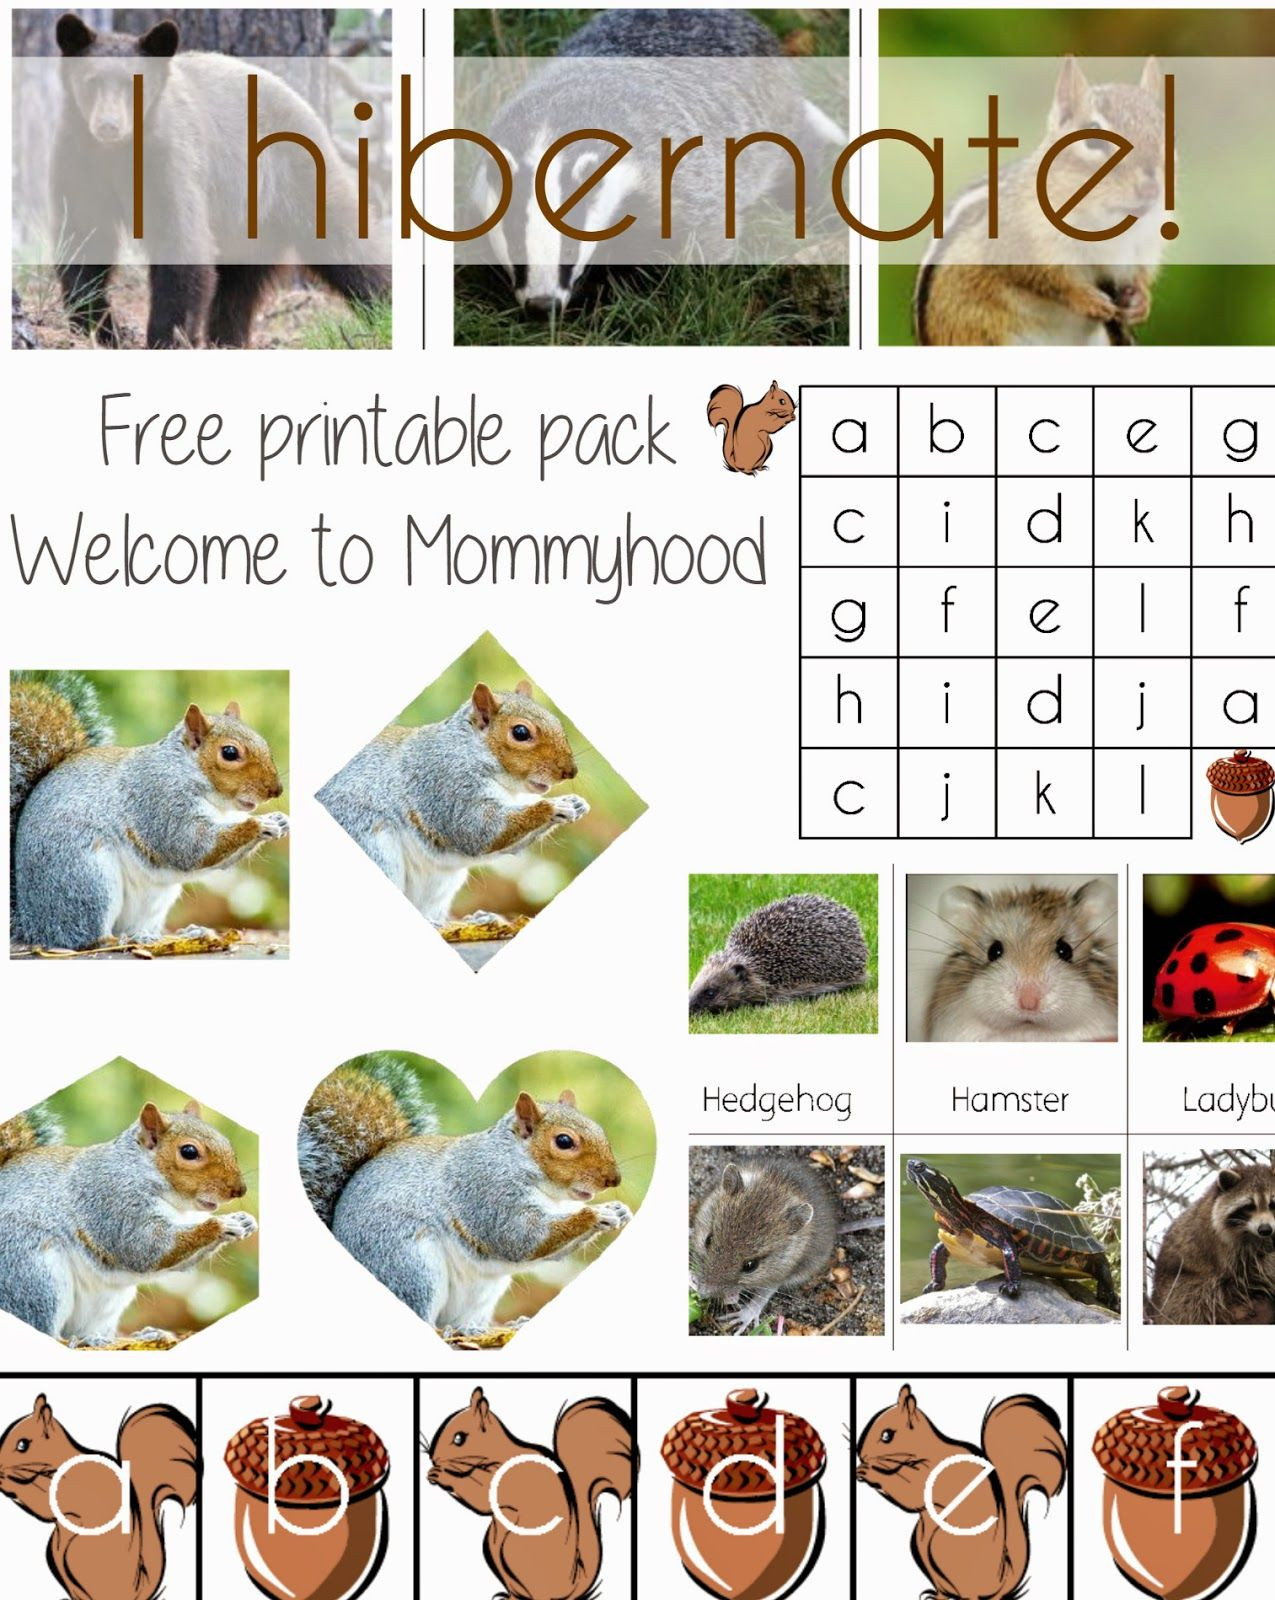 "Hibernation Worksheets for Preschool I Hibernate"" Free Printable Pack From Wel E to Mommyhood"